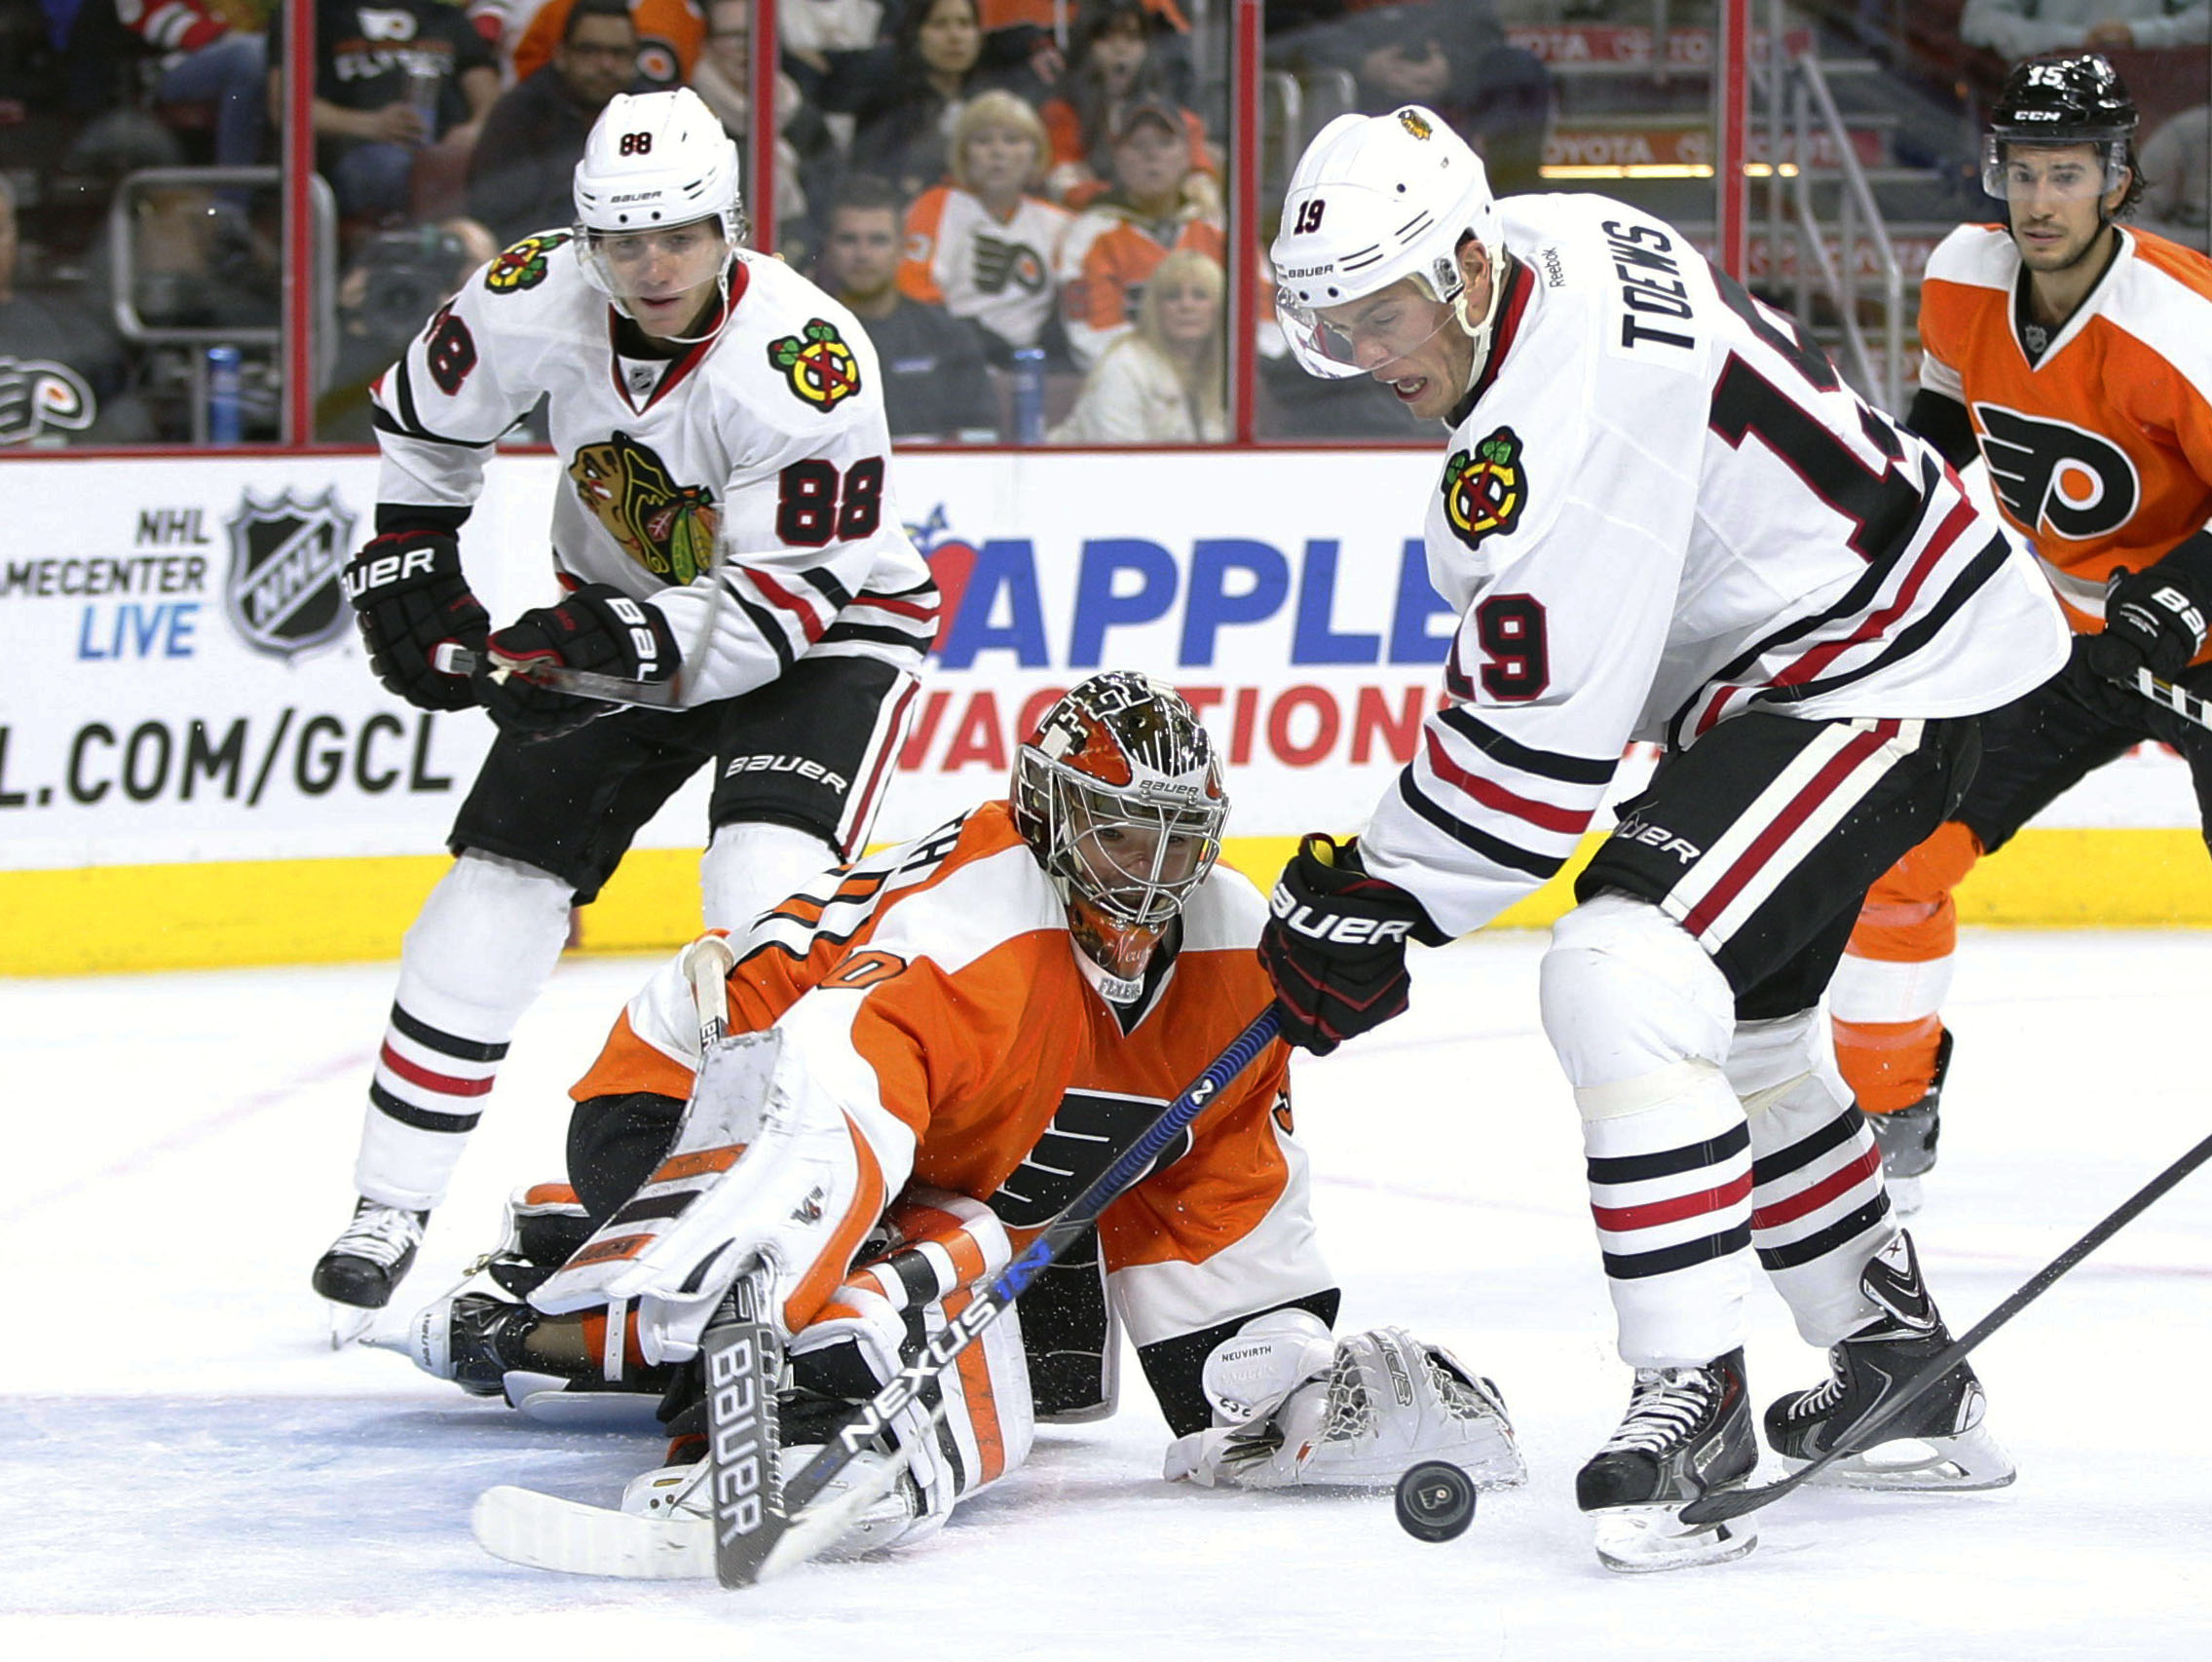 Philadelphia Flyers goalie Michal Neuvirth, center, of Czech Republic knocks the puck away from Chicago Blackhawks center Jonathan Toews, right, with right wing Patrick Kane, left, behind them during the third period of a hockey game, Wednesday, Oct. 14,